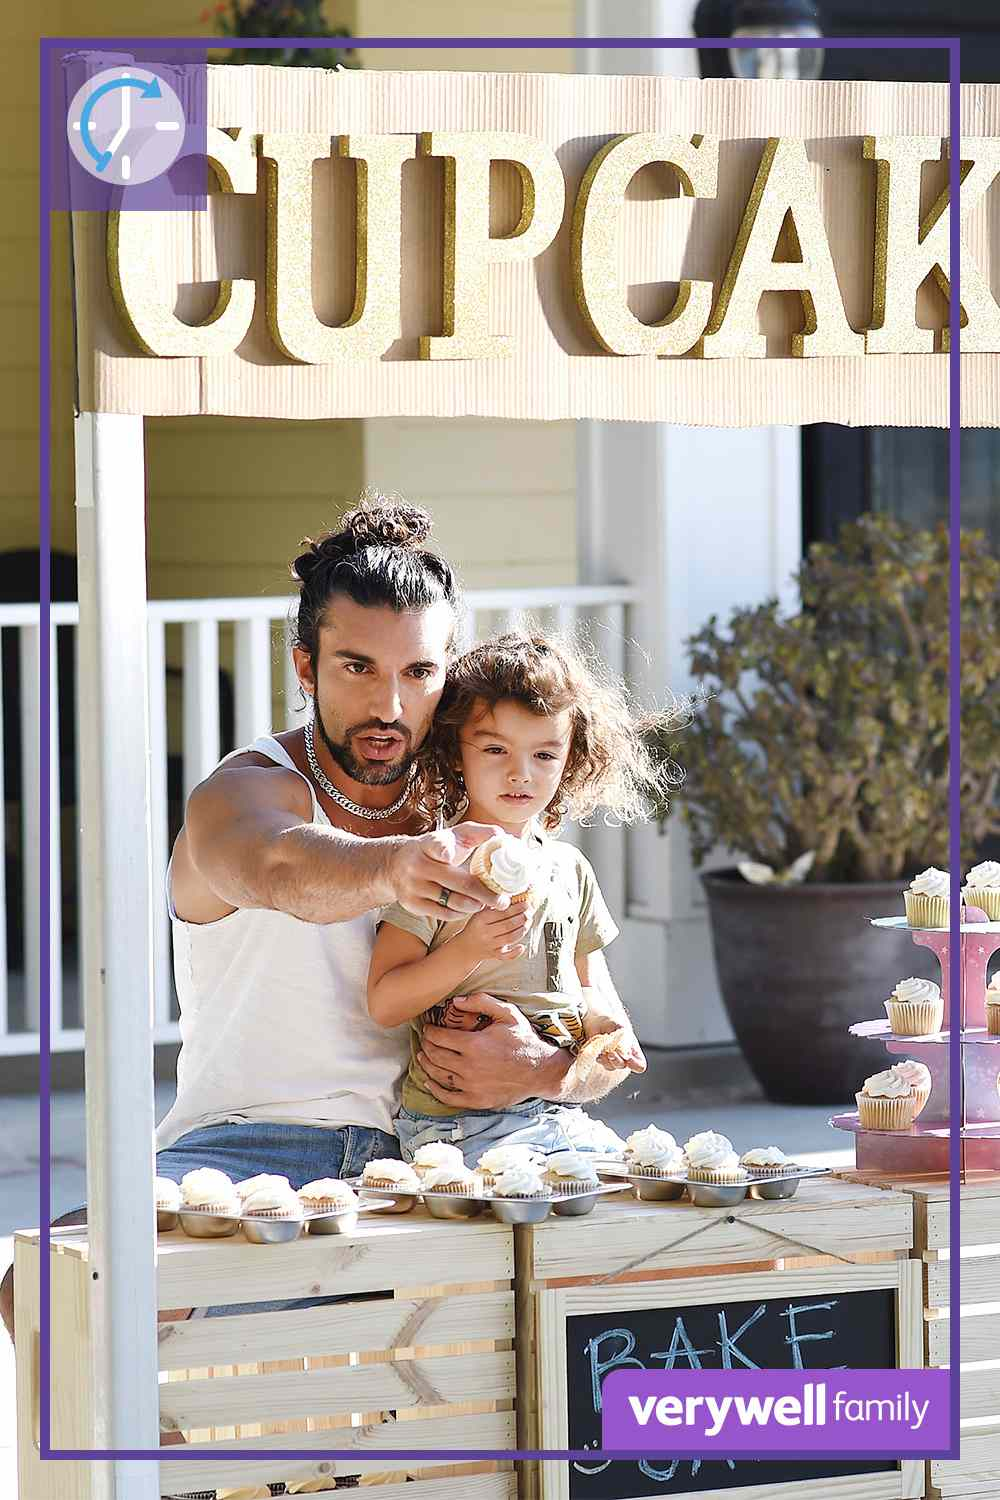 Justin Baldoni at a cupcake stand with his child